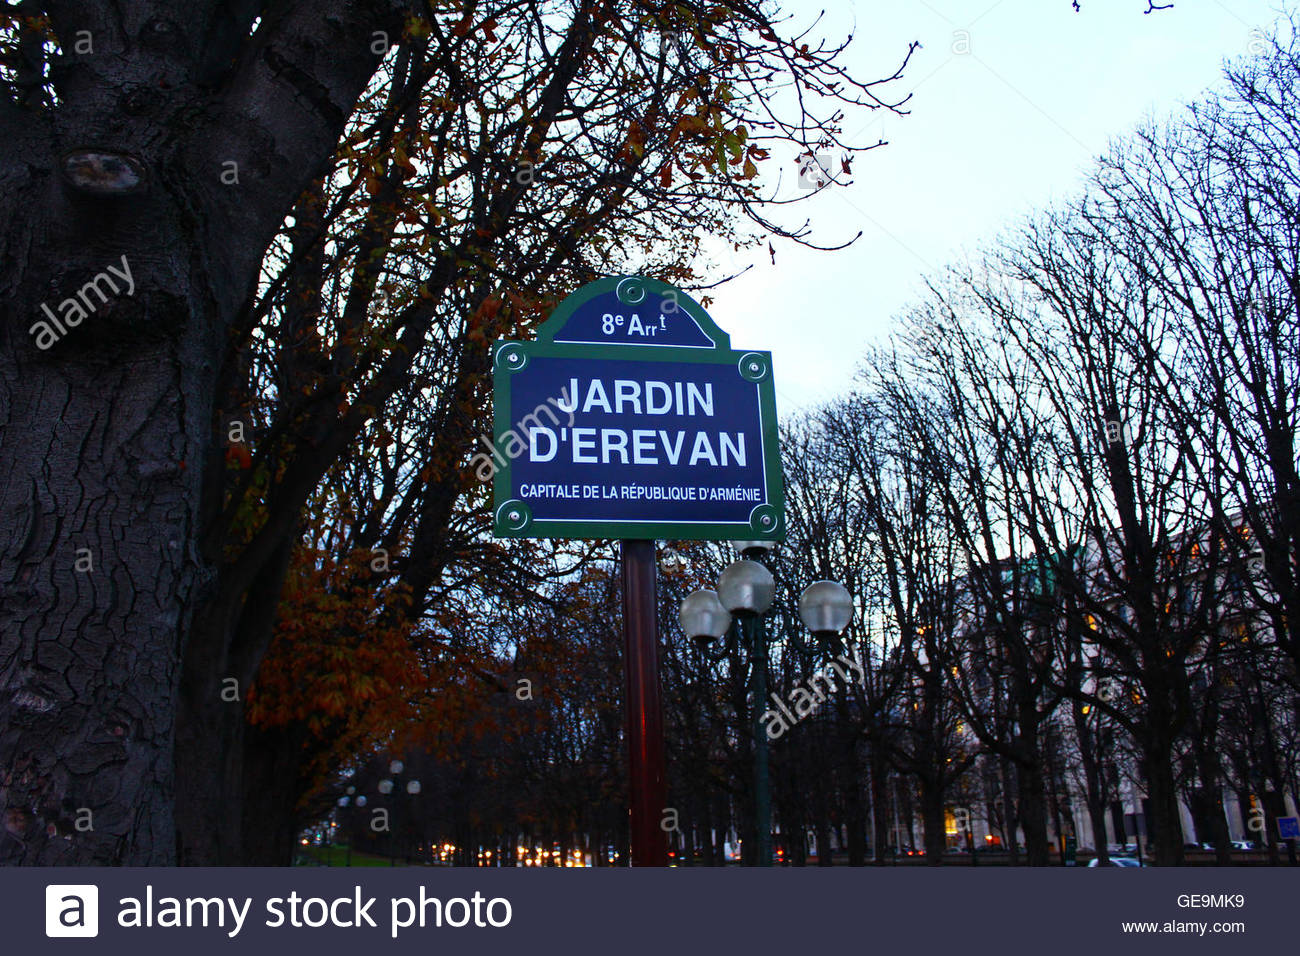 the street in paris france with armenian street name GE9MK9